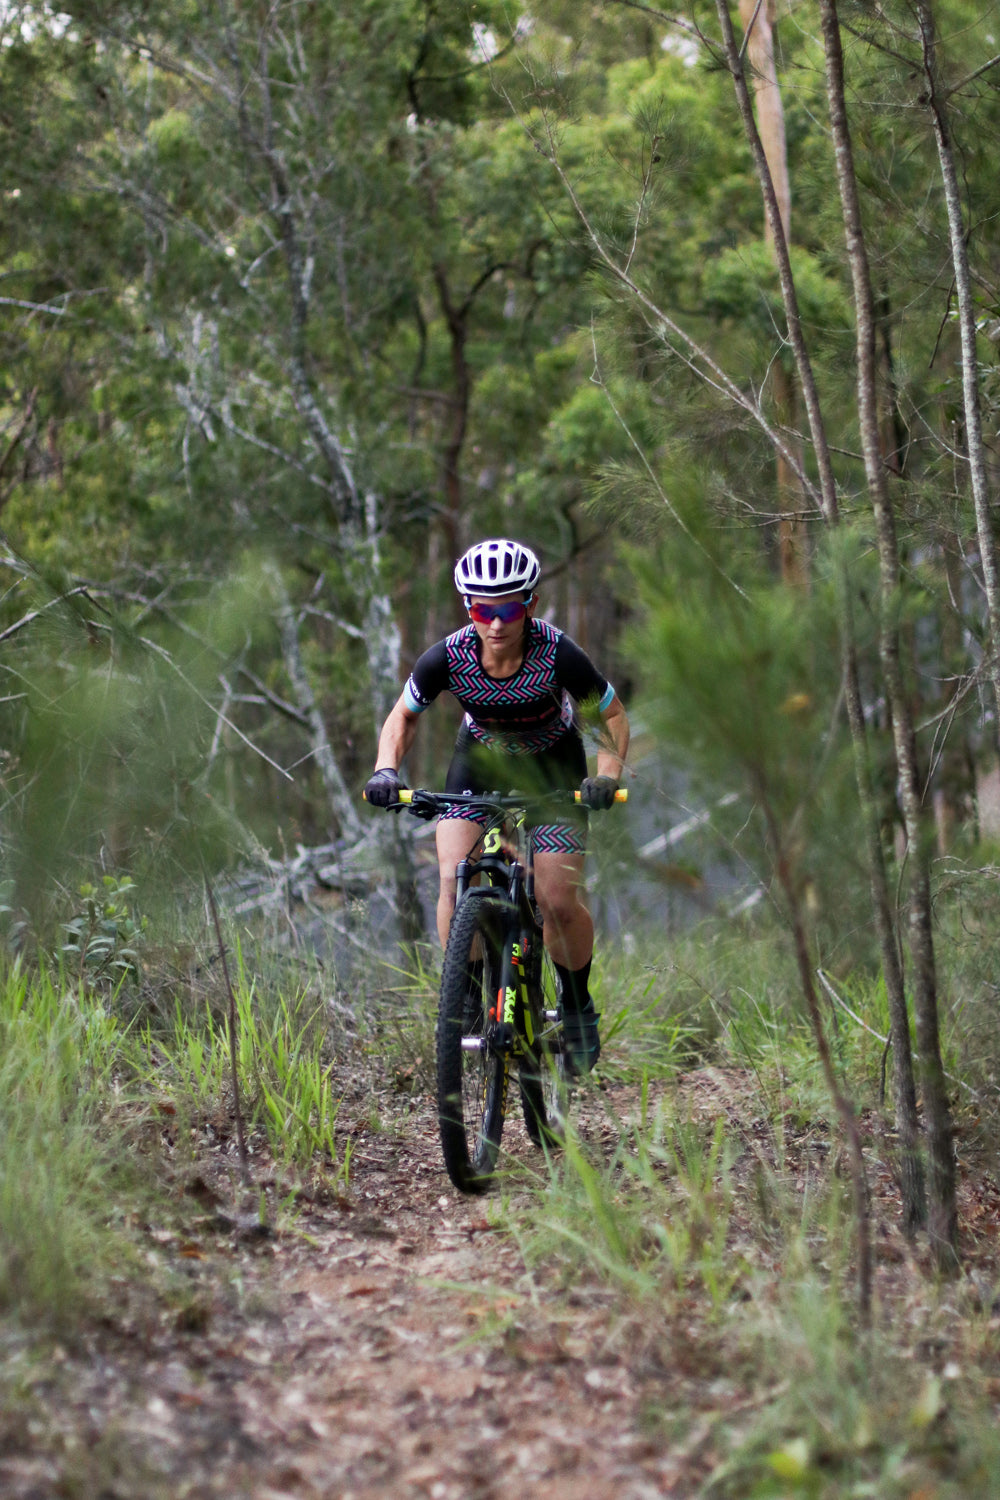 Leela Hancox Professional Off-Road Triathlete